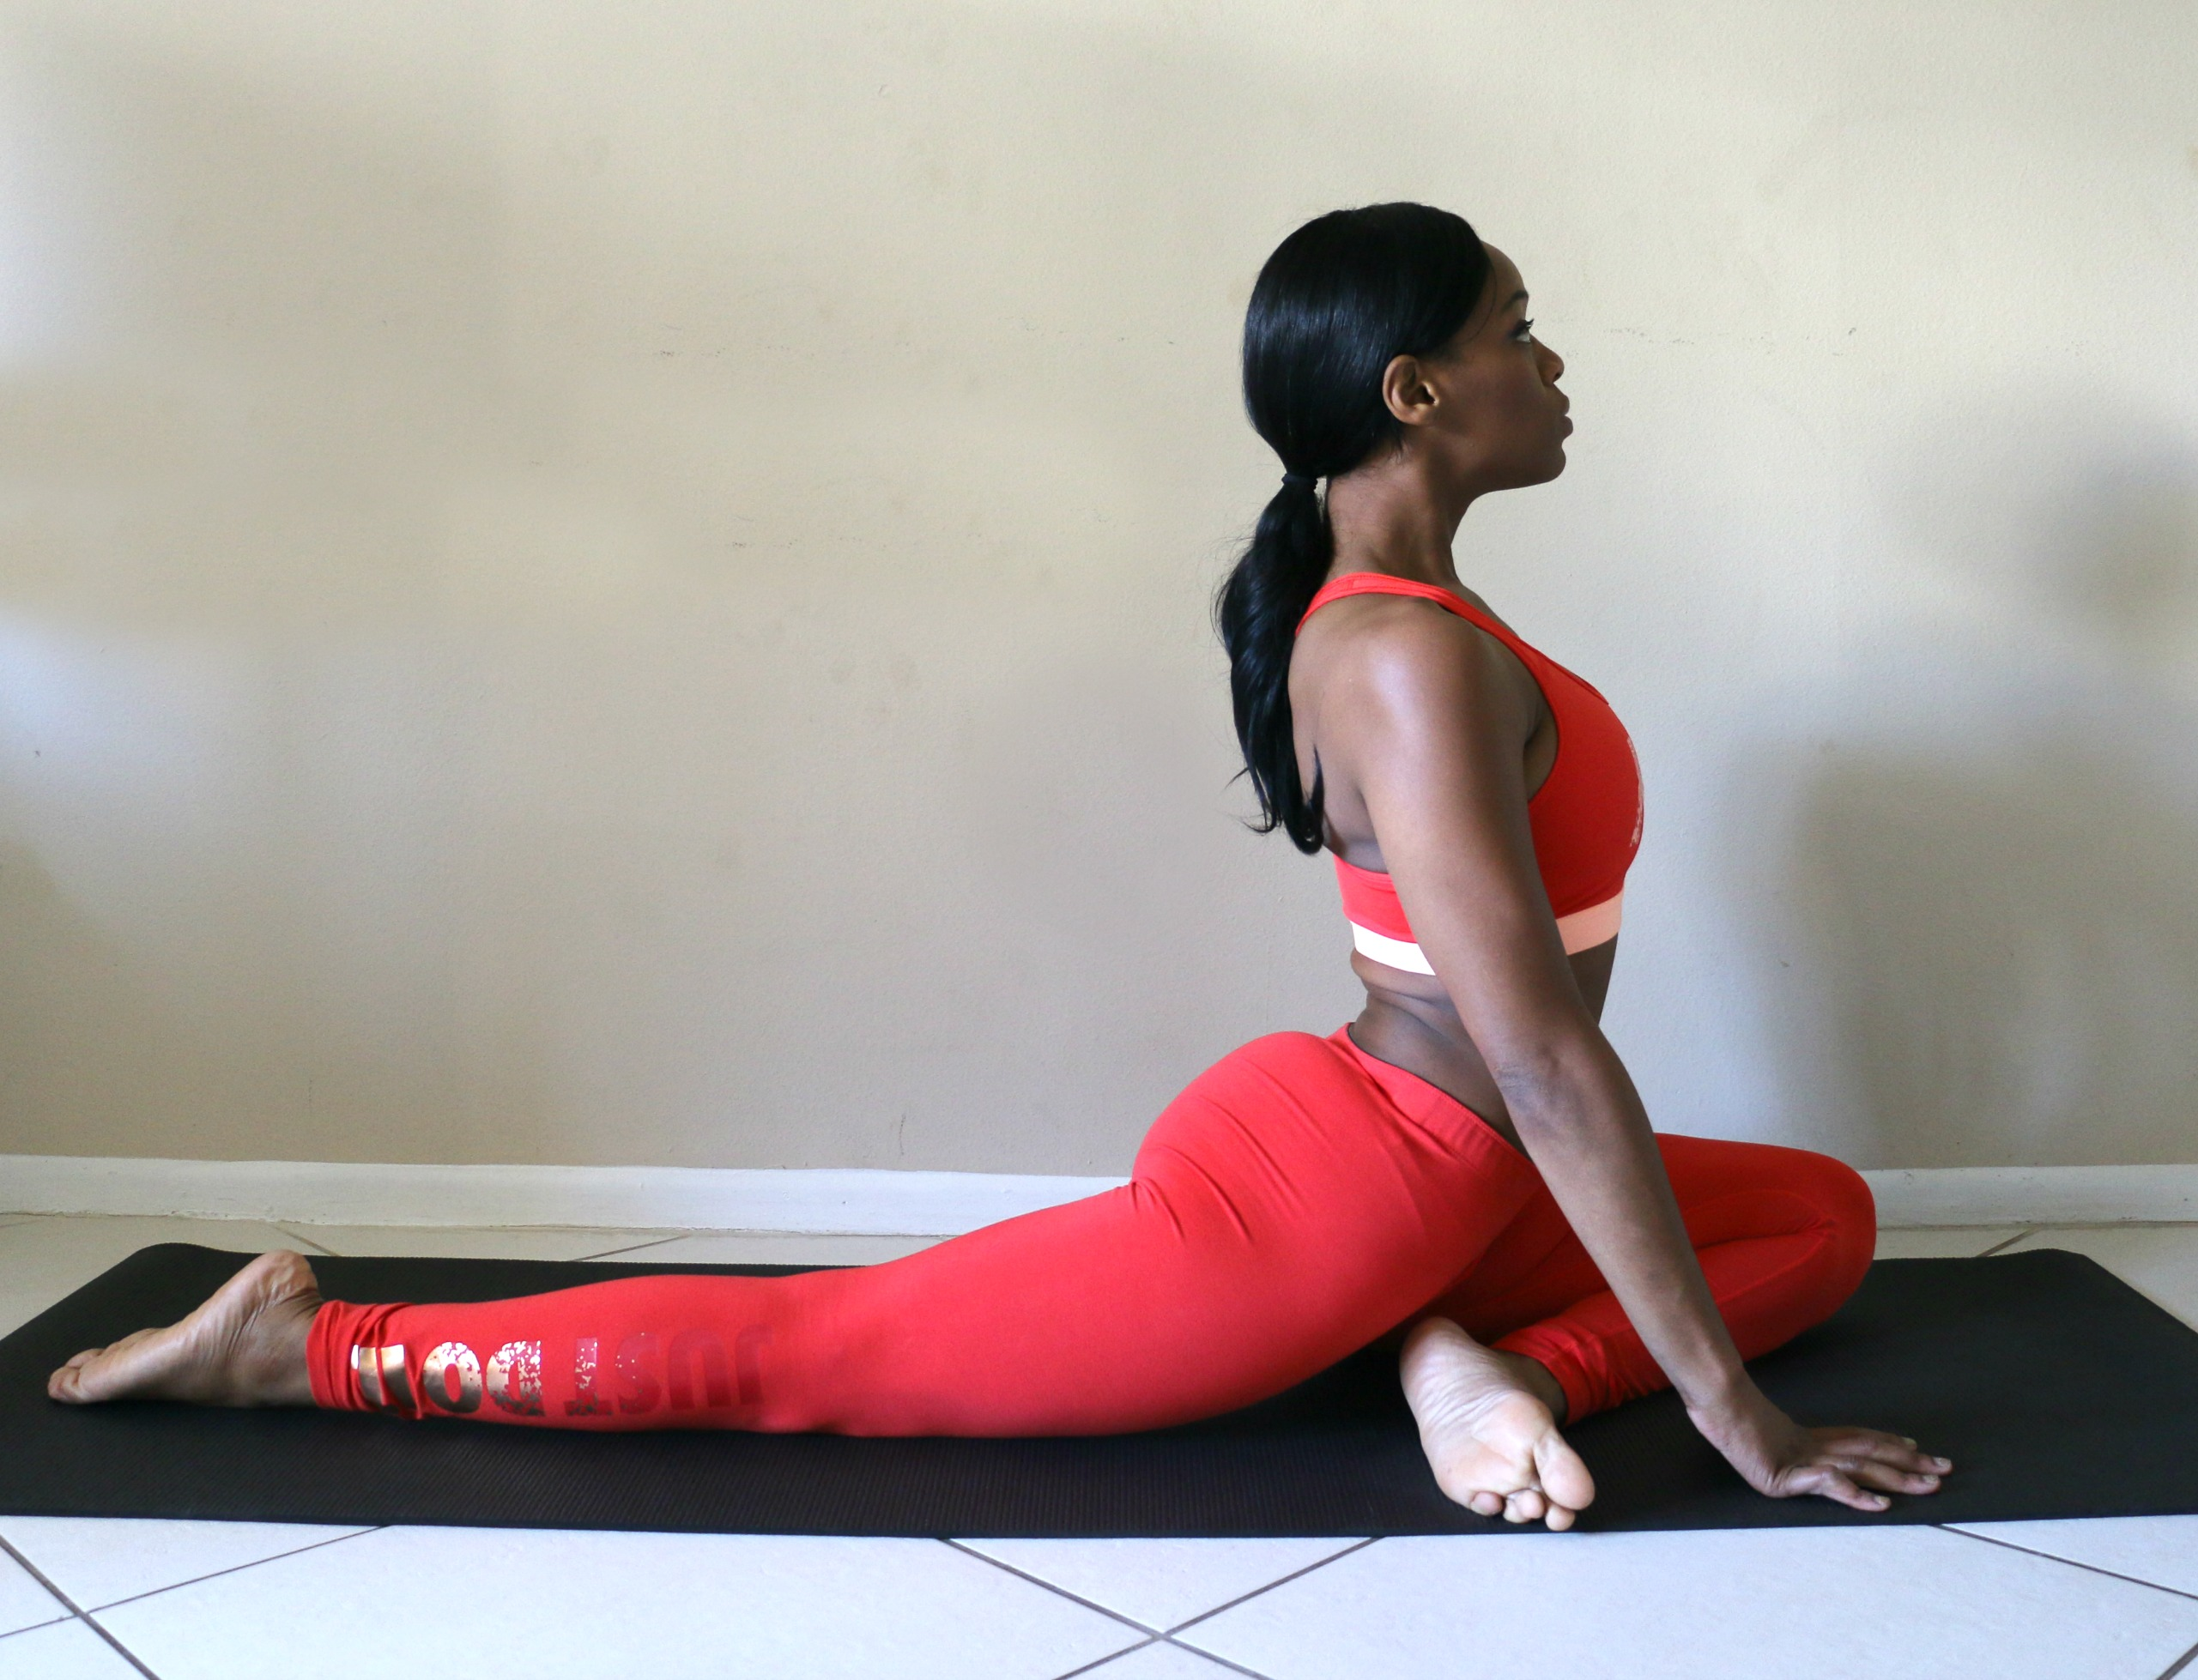 one-legged-king-pigeon-pose-how-to-do-the-splits-tutorial-yoga-beauty-and-the- beat-blog